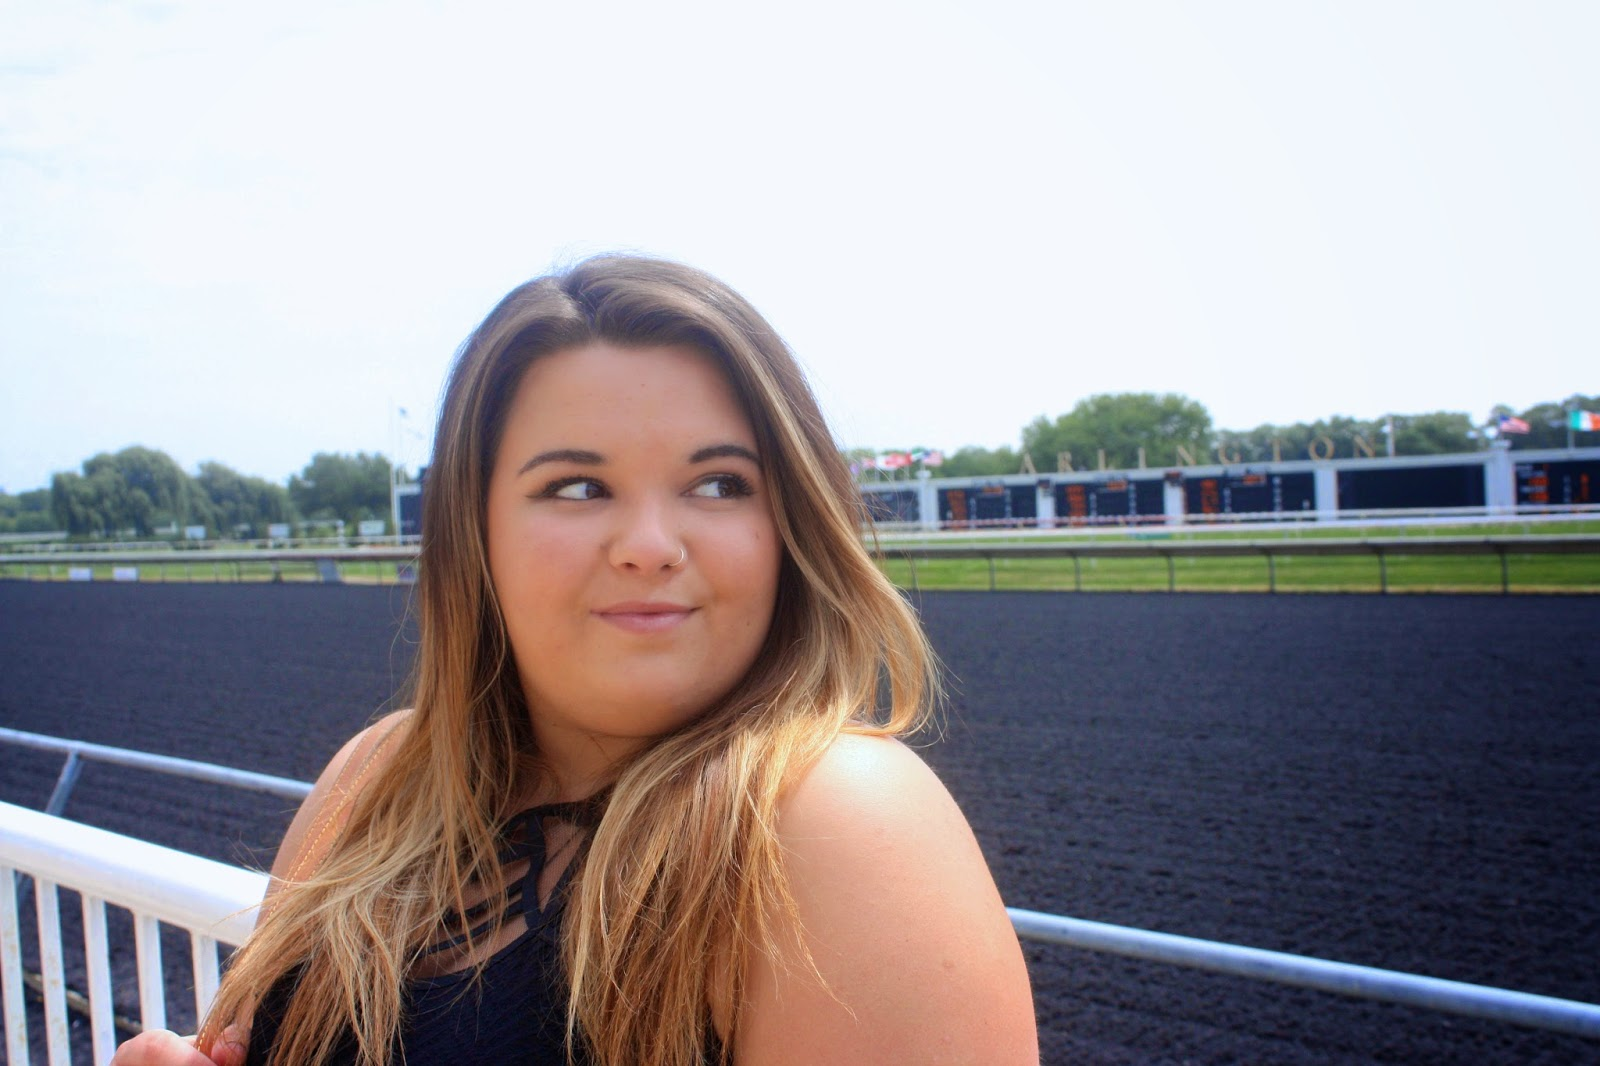 Arlington race track, chicago, Illinois, natalie in the city, natalie craig, americas best racing, horse race attire, horse race outfits, forever 21 plus size, fashion blogger, beyonce, gold pattern, pencil skirt, plus size fashion blogger, gladiator sandals, nine west, louis vuitton tote, peplum blouse, ombre hair